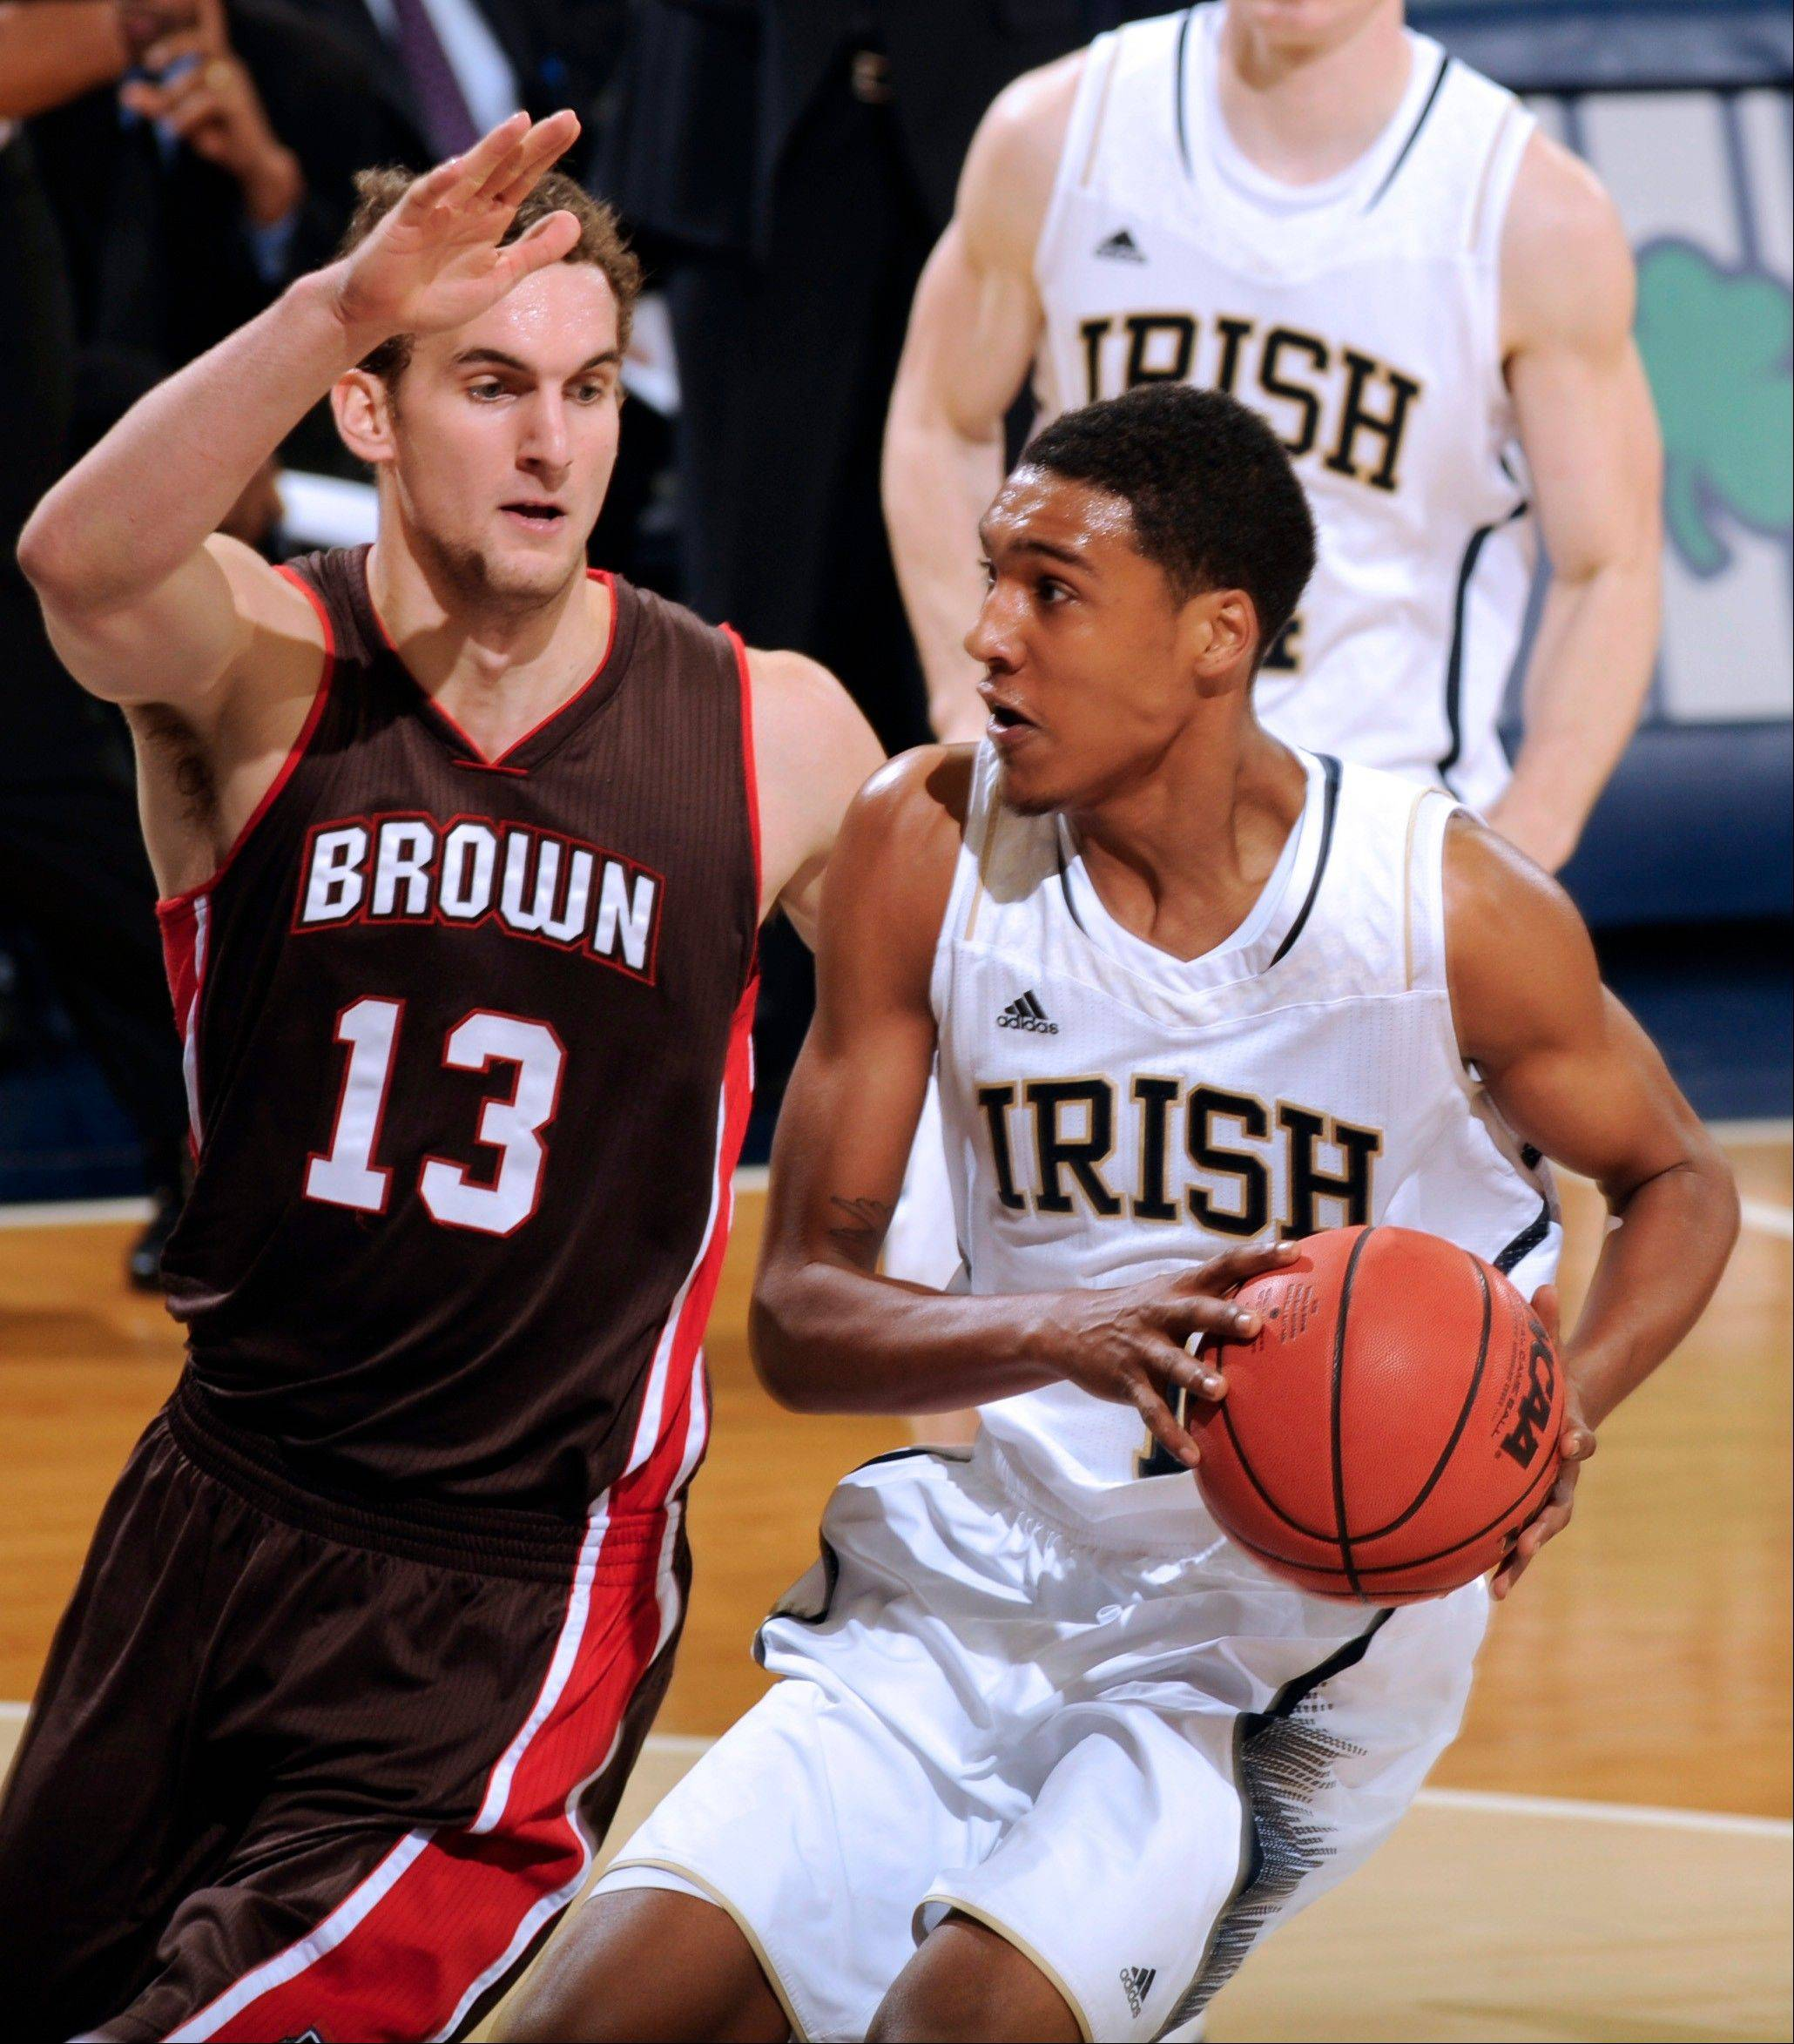 Notre Dame guard Cameron Beidscheid, right, drives the lane as Brown guard Tyler Ponticelli, defends during the second half Saturday in South Bend, Ind. Beidscheid lead with 17 points as Notre Dame won 84-57.